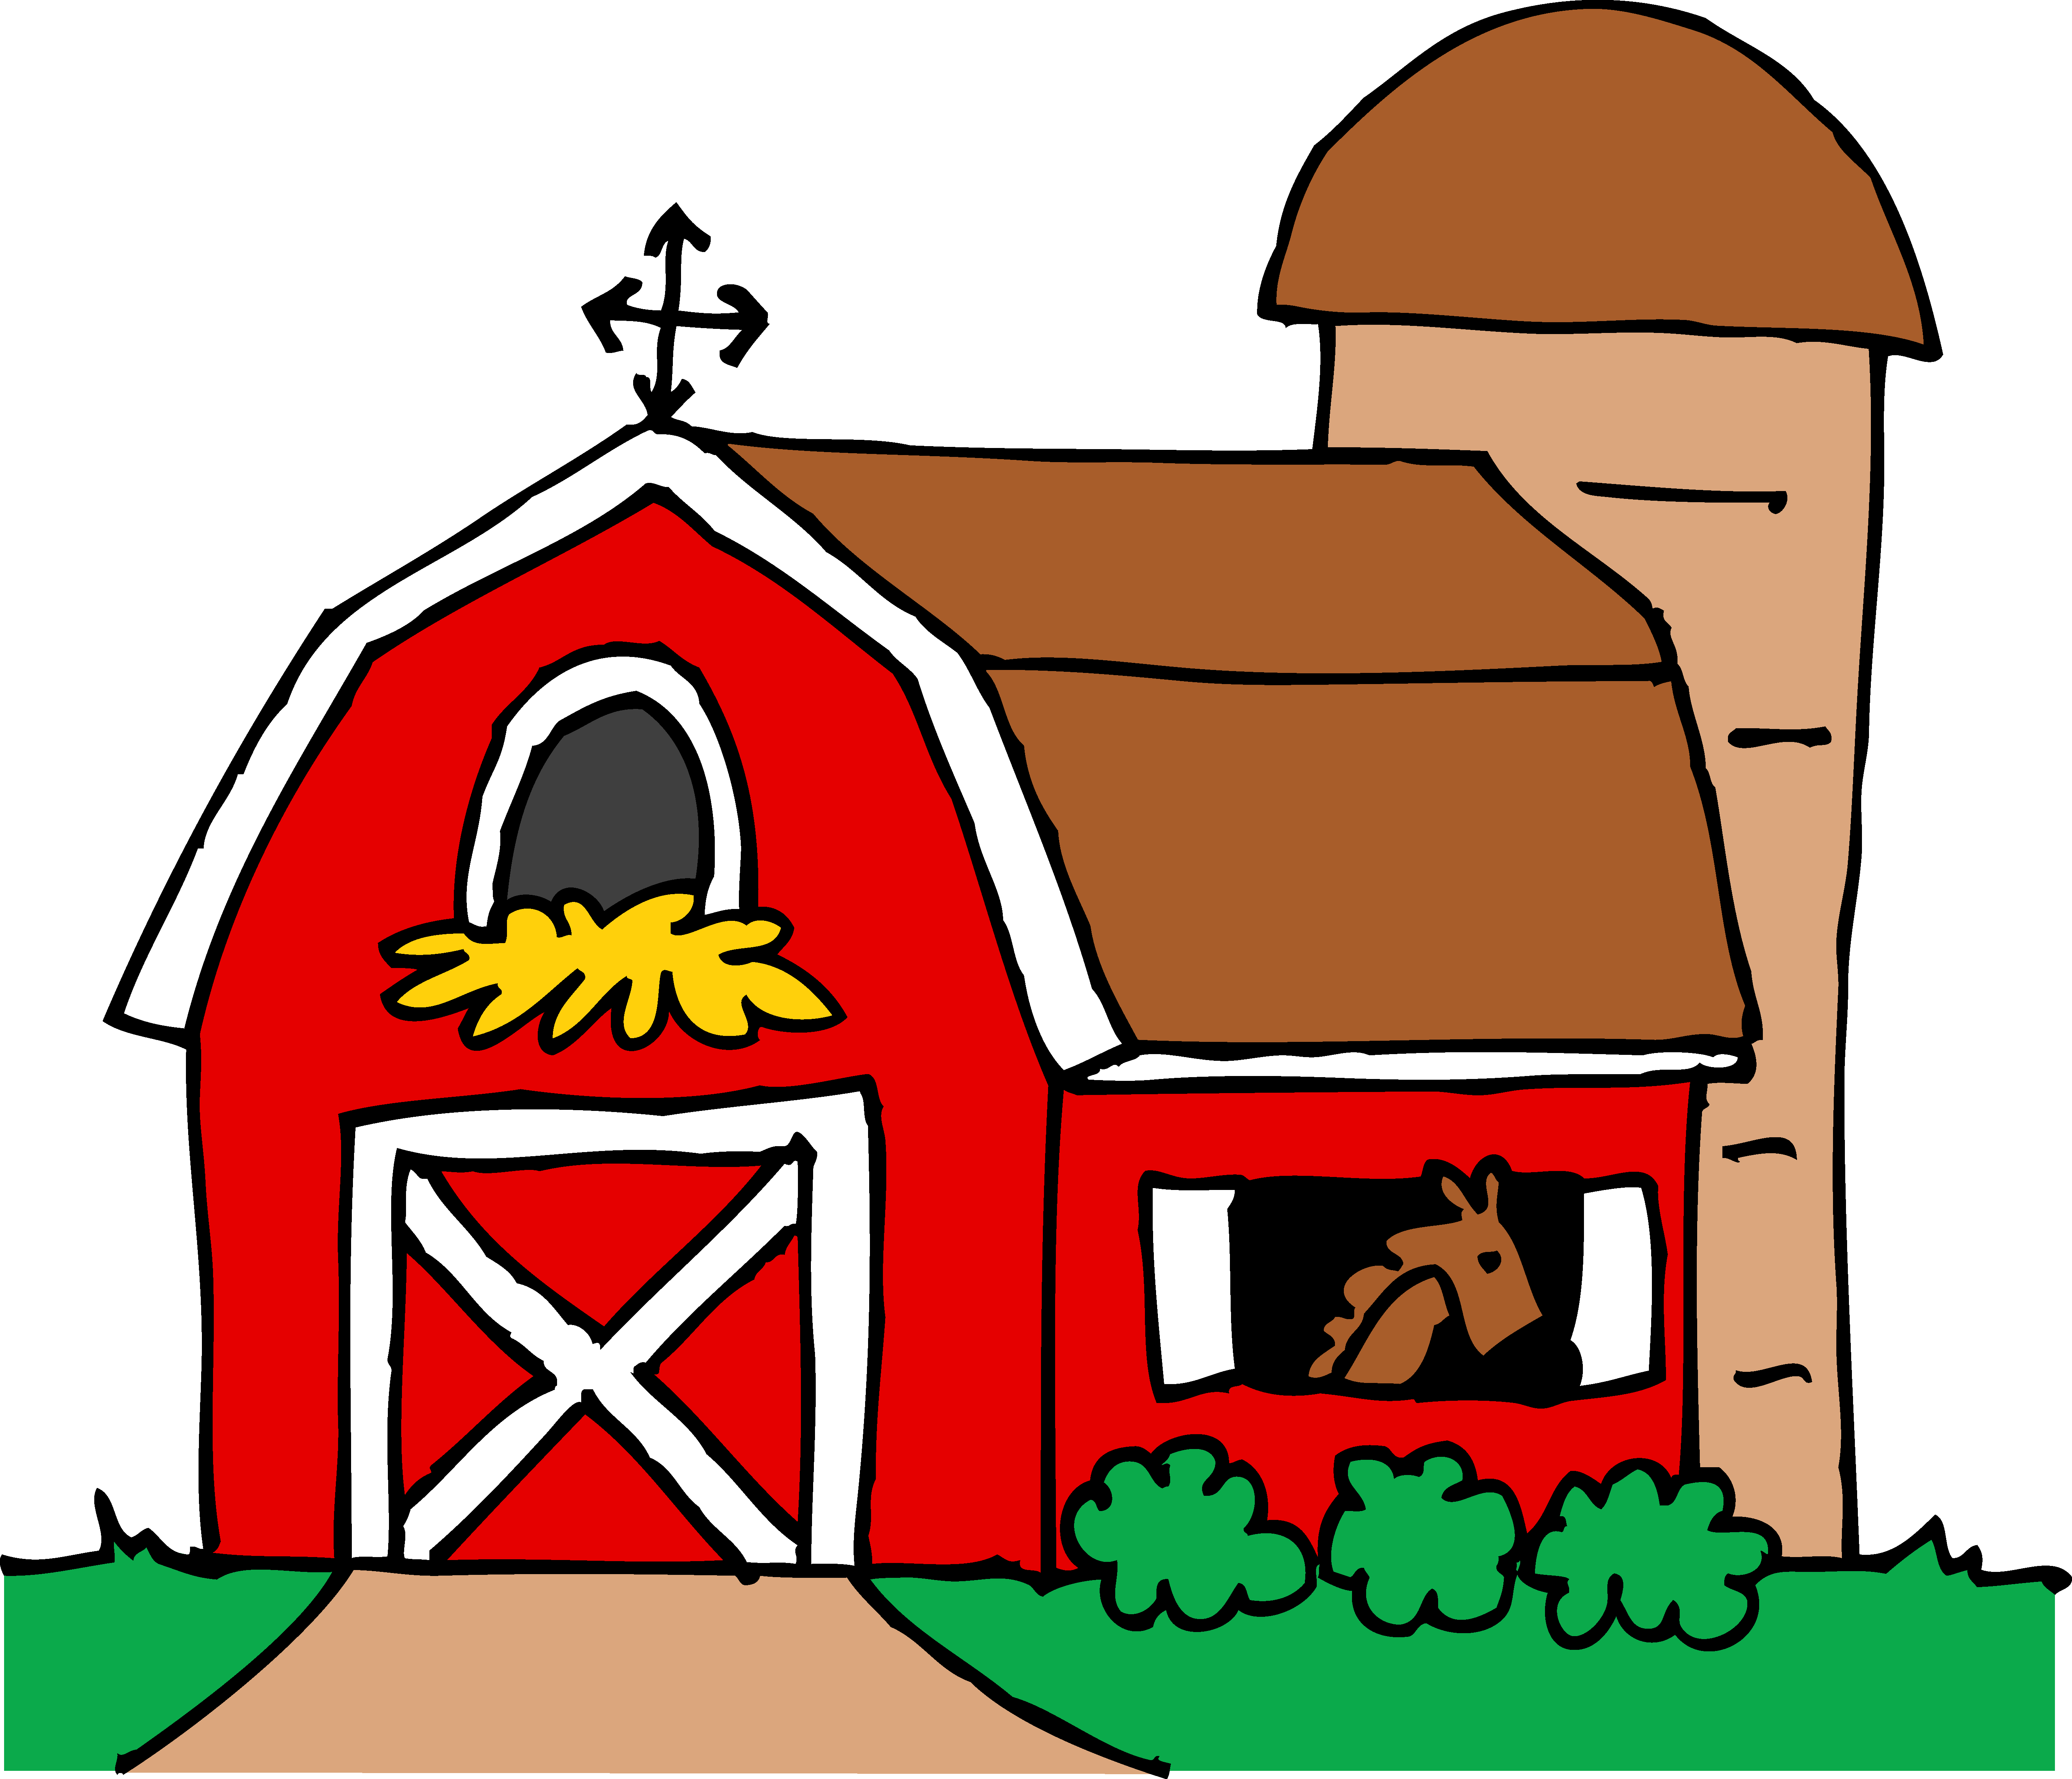 Barn 20clipart | Clipart Panda - Free Clipart Images